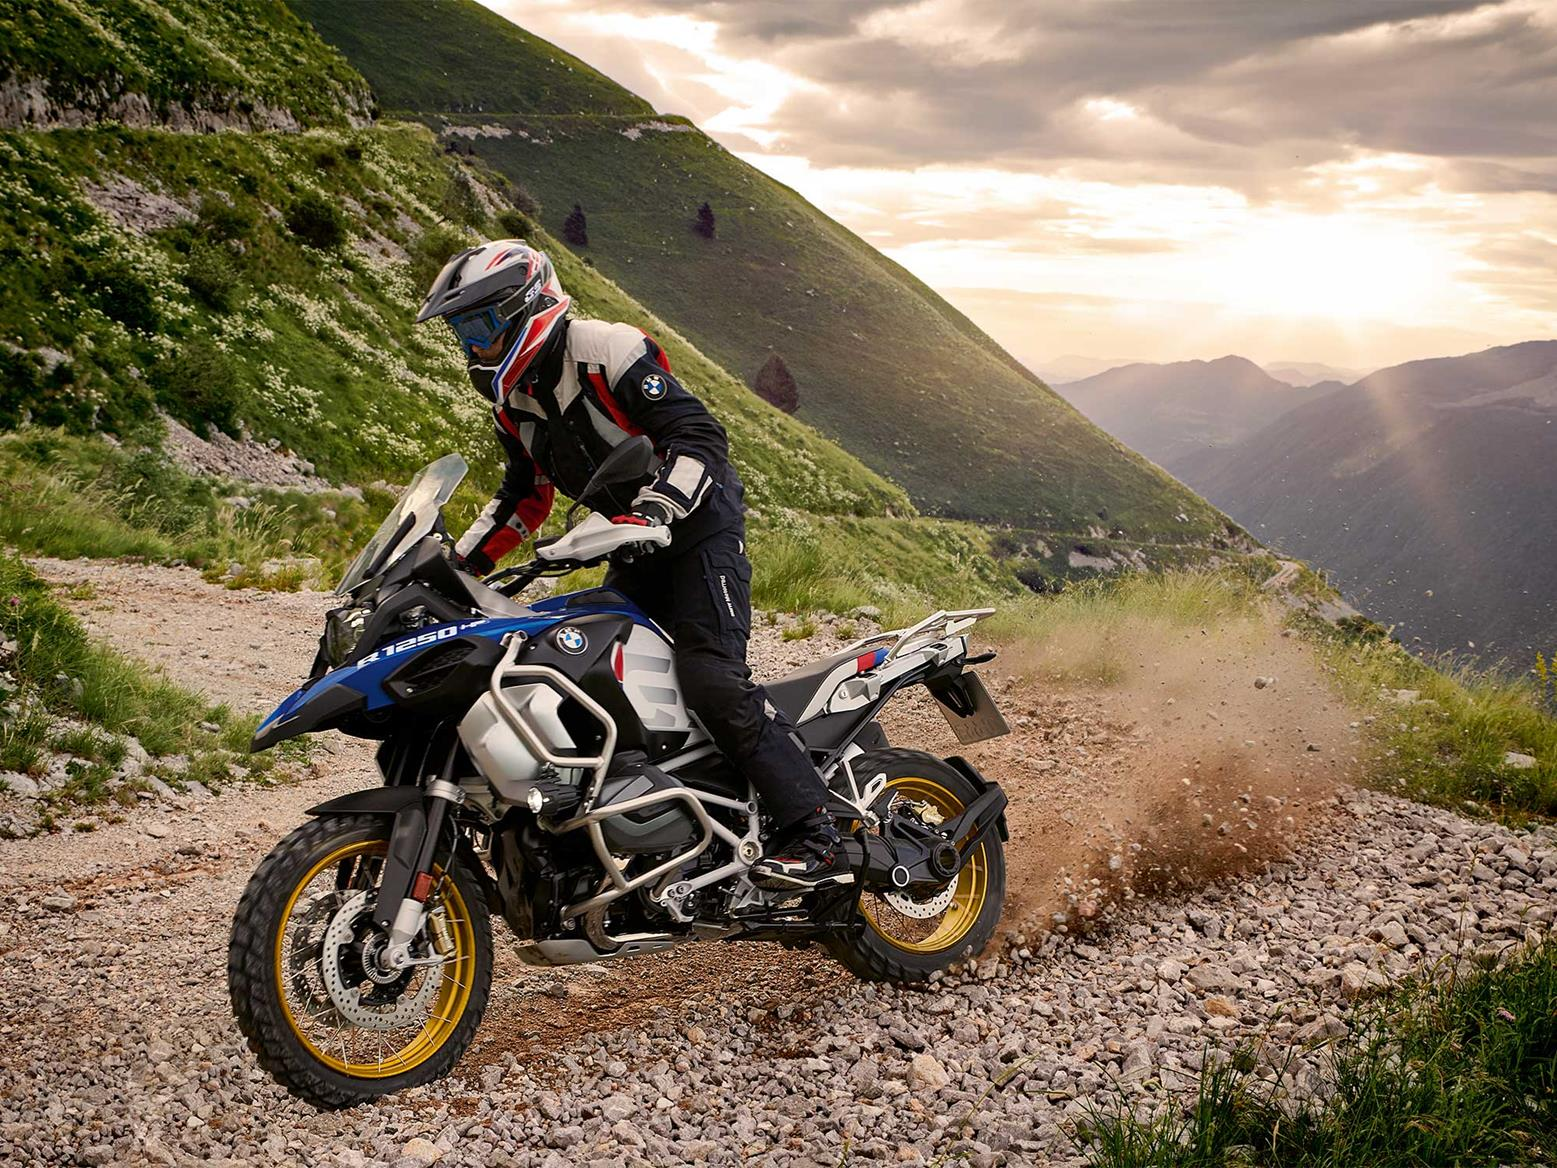 BMW's R1250GS is the latest and greatest version of the German's firm flagship adventure bike